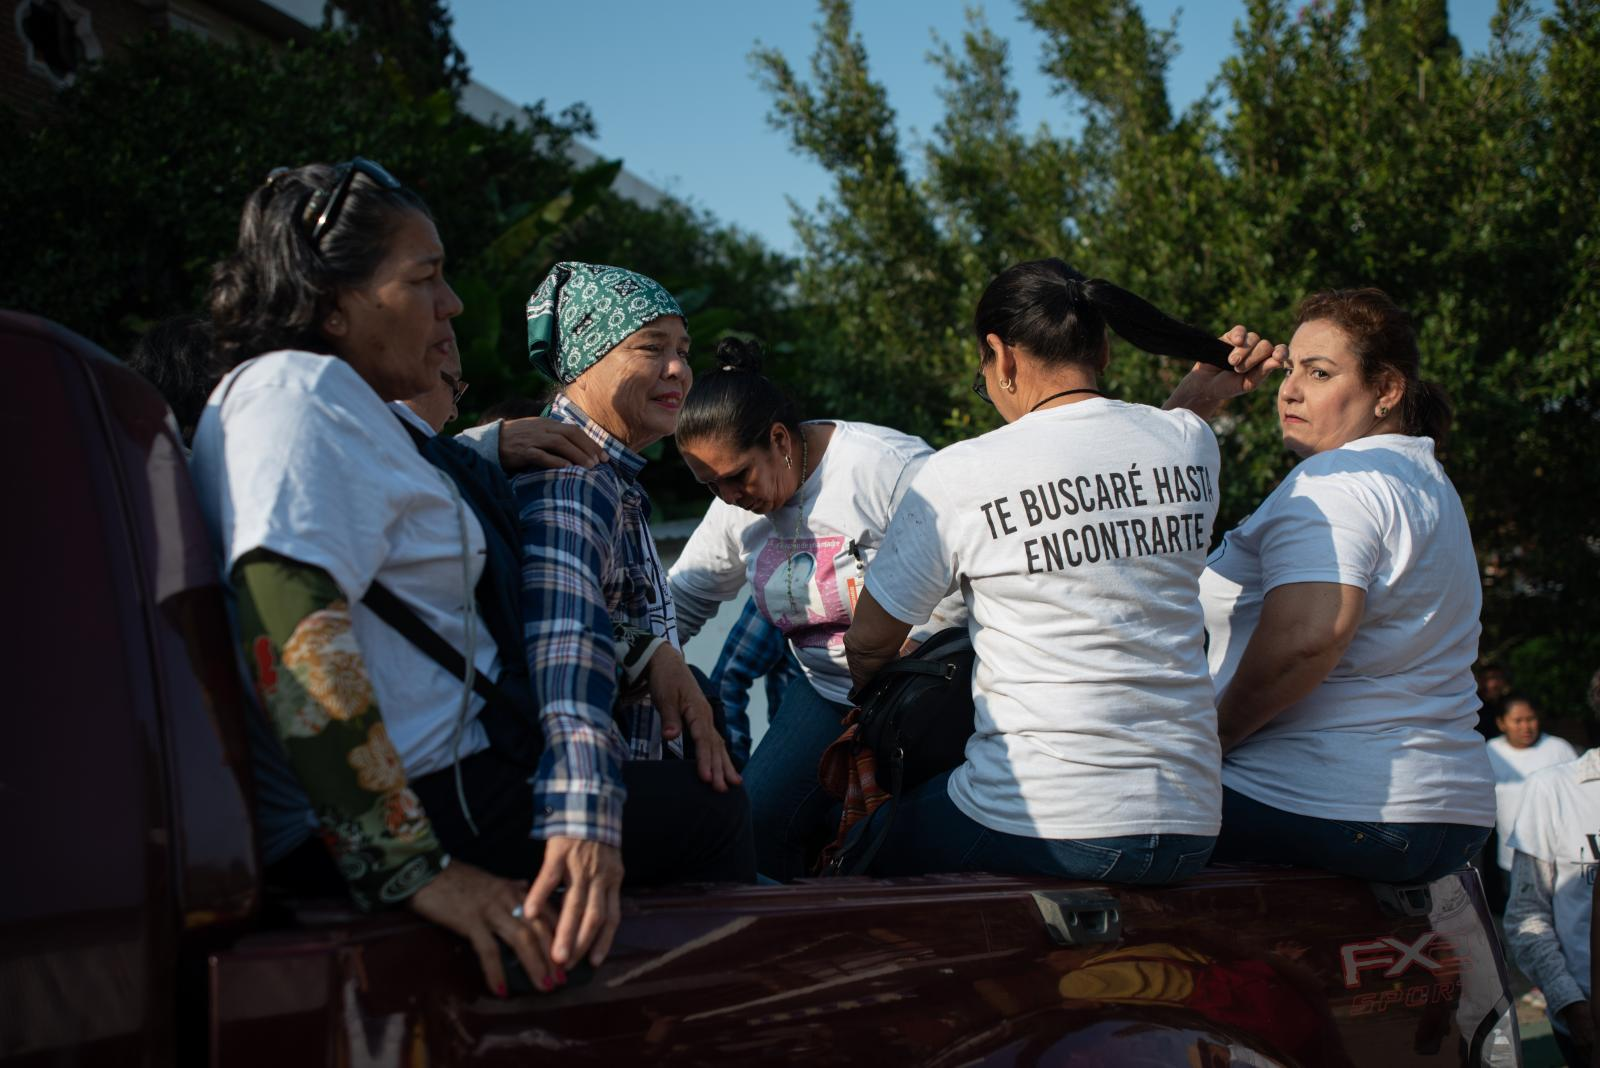 "The seekers collective ""Las Rastreadoras del Fuerte"" from Sinaloa, Mexico, board a pickup truck inside the Casa de la Iglesia center, where they housed about 300 people associated with social groups who participated in the fifth National Missing Persons Search Brigade, on February 20, 2020 in Papantla, Veracruz, Mexico, on February 20, 2020. Victoria Razo for NPR"